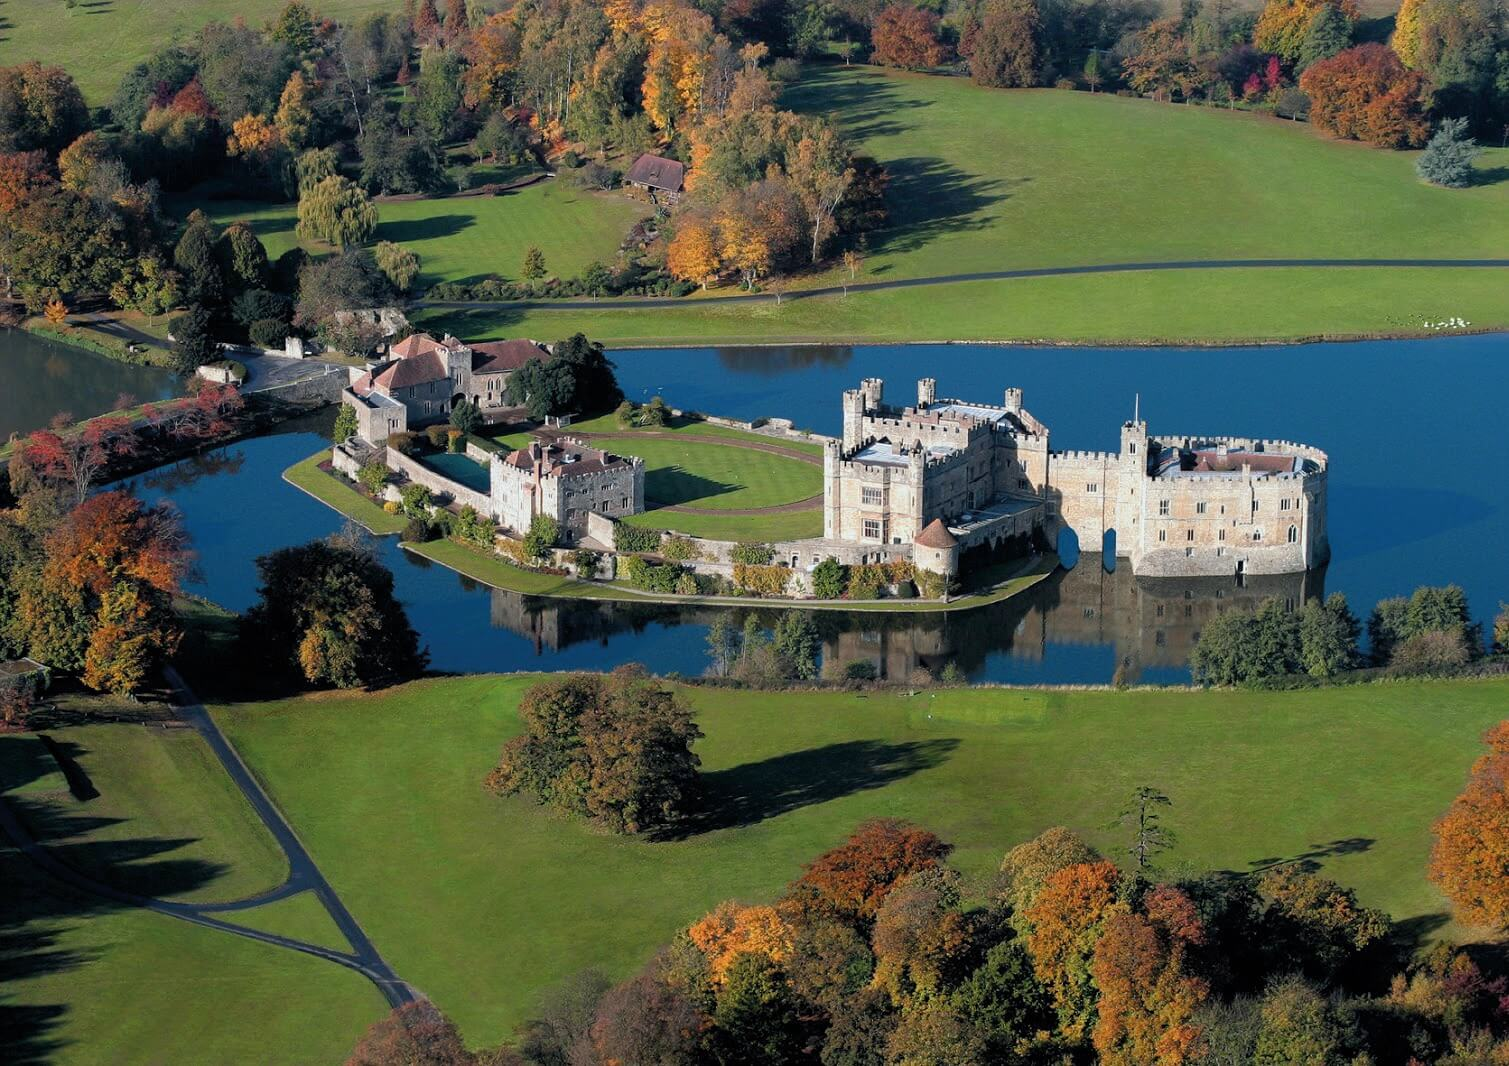 Leeds Castle from above